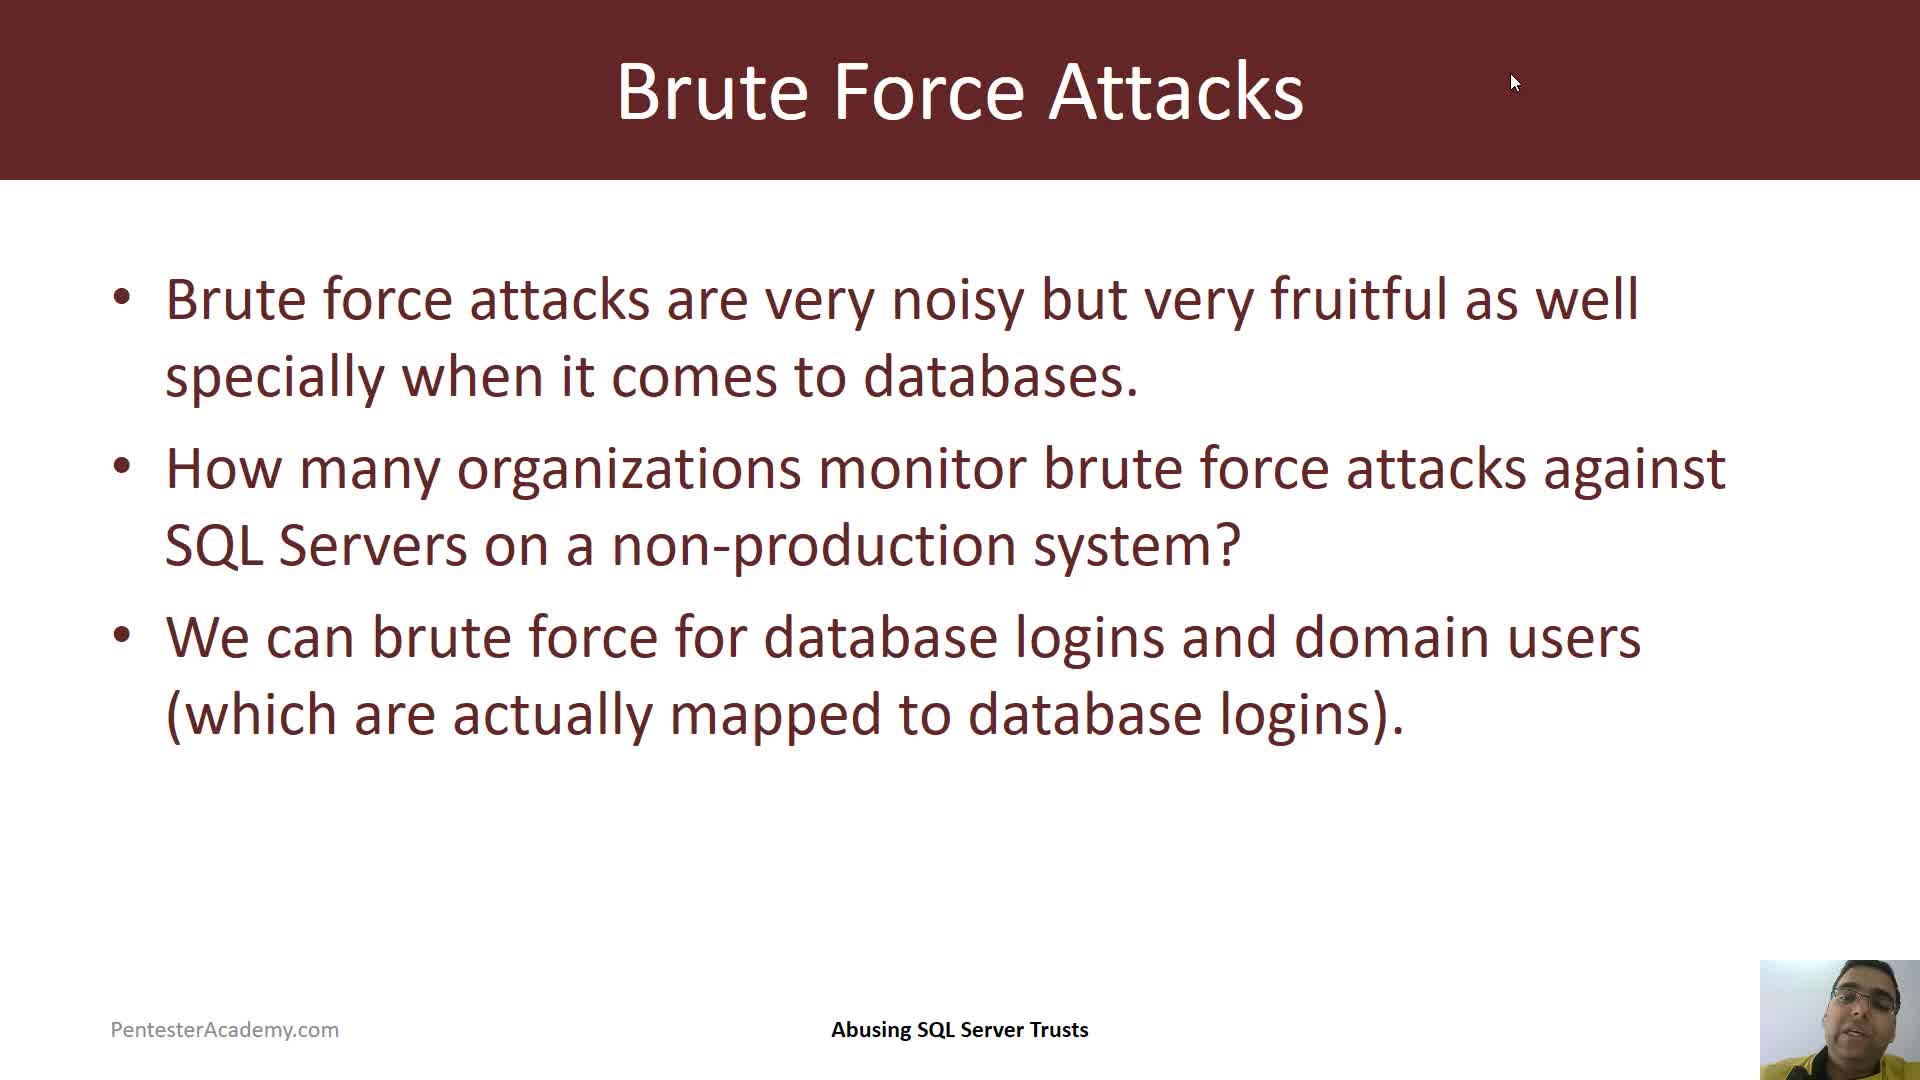 Bruteforce Attacks on SQL Server